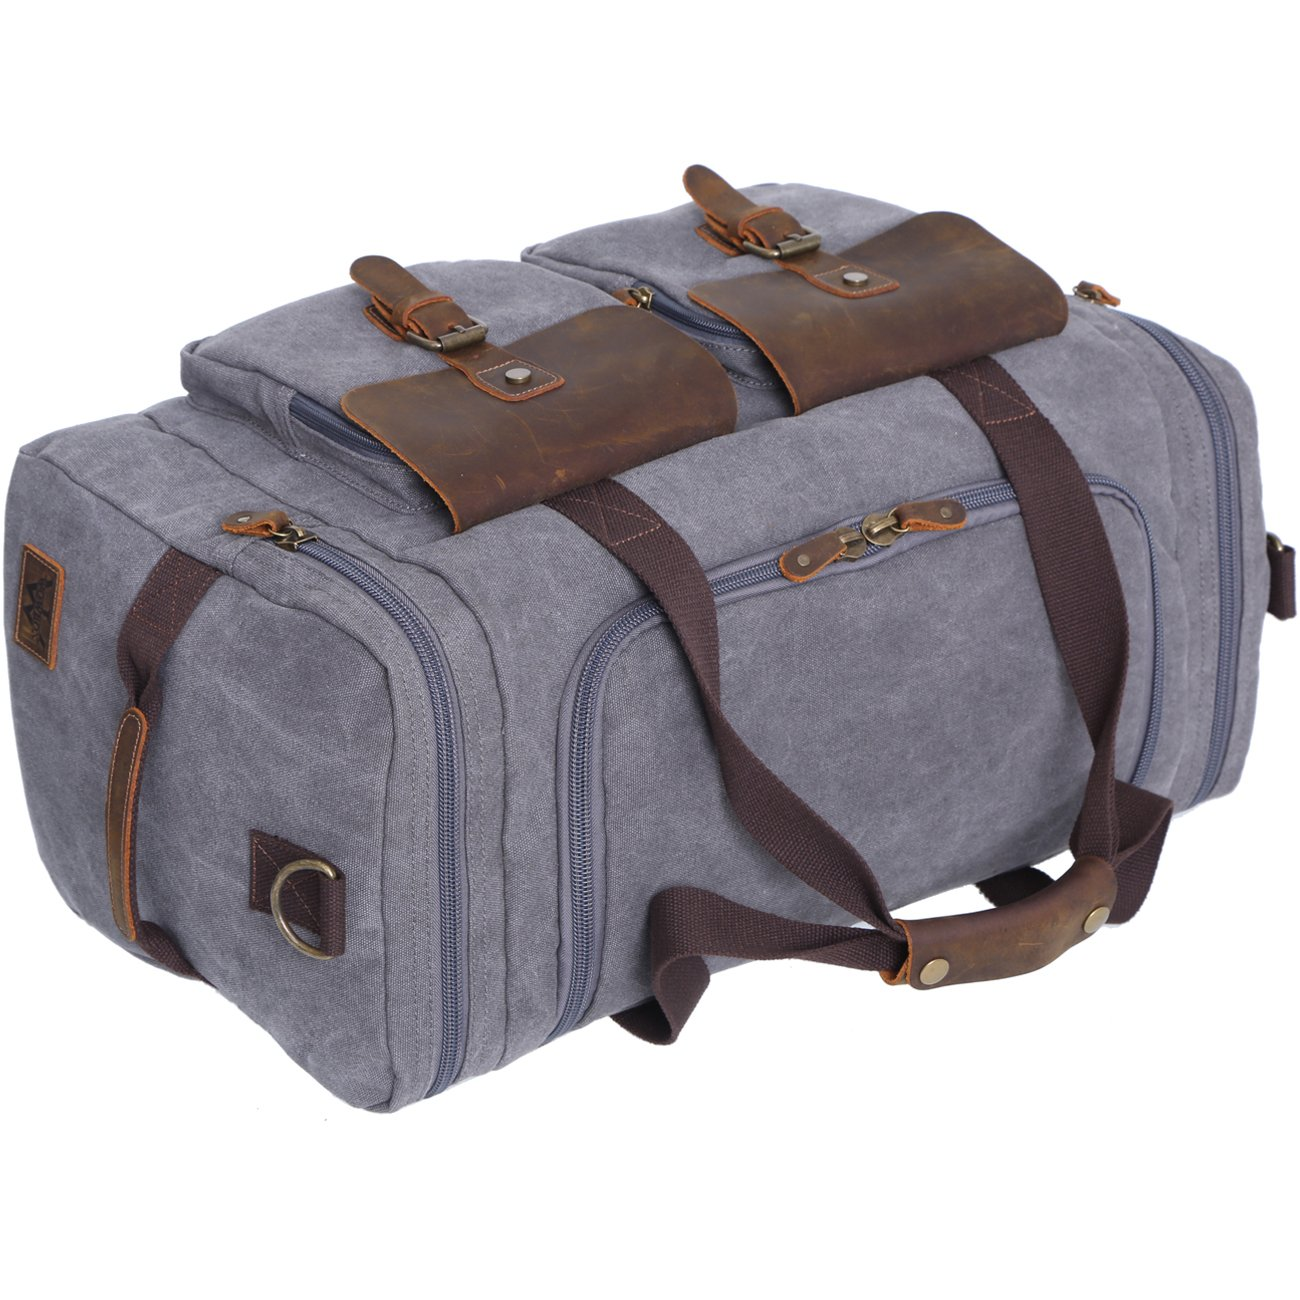 0e6e583f75 WOWBOX Duffle Bag Weekender Bag for Men Genuine Leather Canvas Travel  Overnight Carry on Bag with